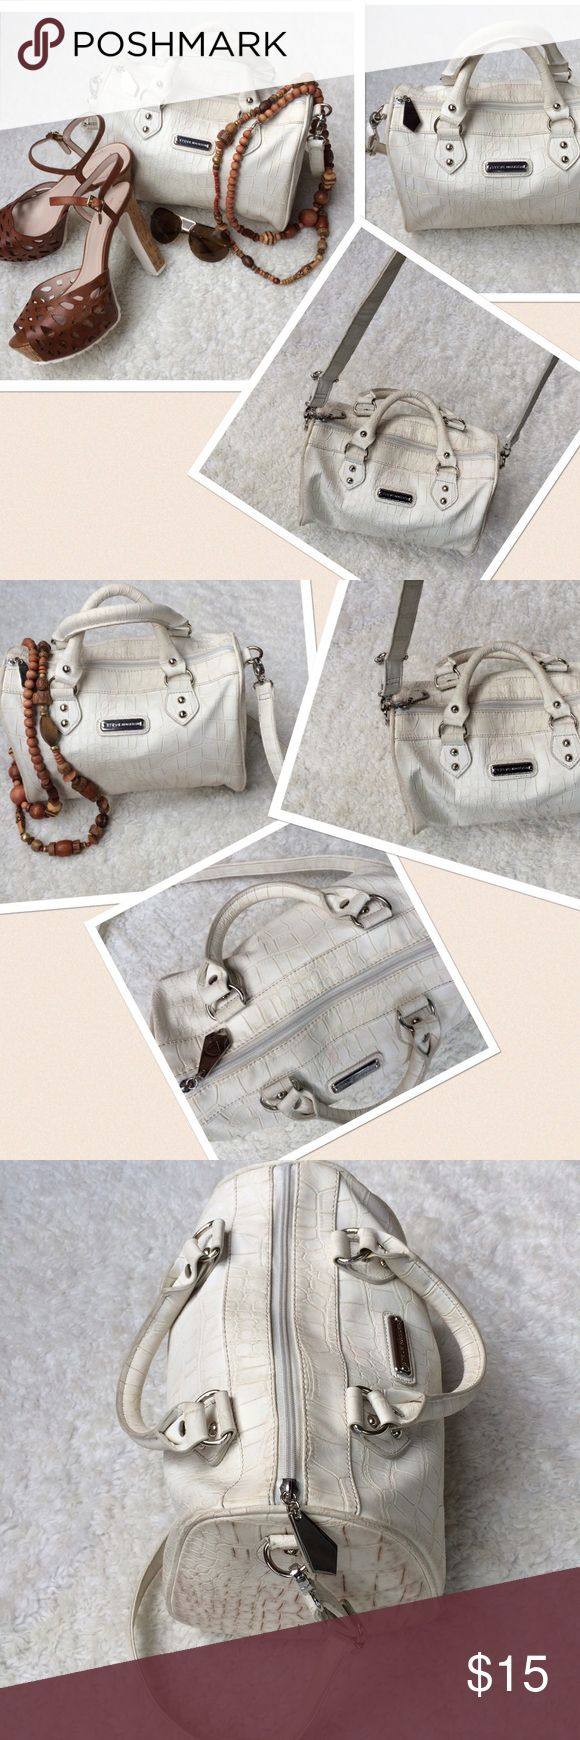 "Steve Madden Croc Handbag Shoulder Doctor Bag Offwhite Croc design Handbag by Steve Madden. Designed with Shoulder Strap and Carry Handle. Logo at the front. Measures approximately: Shoulder strap: adjustable 18"" Carry Handle: 5"" Width: 11"" Length: 10"" Depth: 6"". Previously owned with ❤️. Has a small mark on the inside lining, nothing major, overall clean Excellent condition. Steve Madden Bags Shoulder Bags"